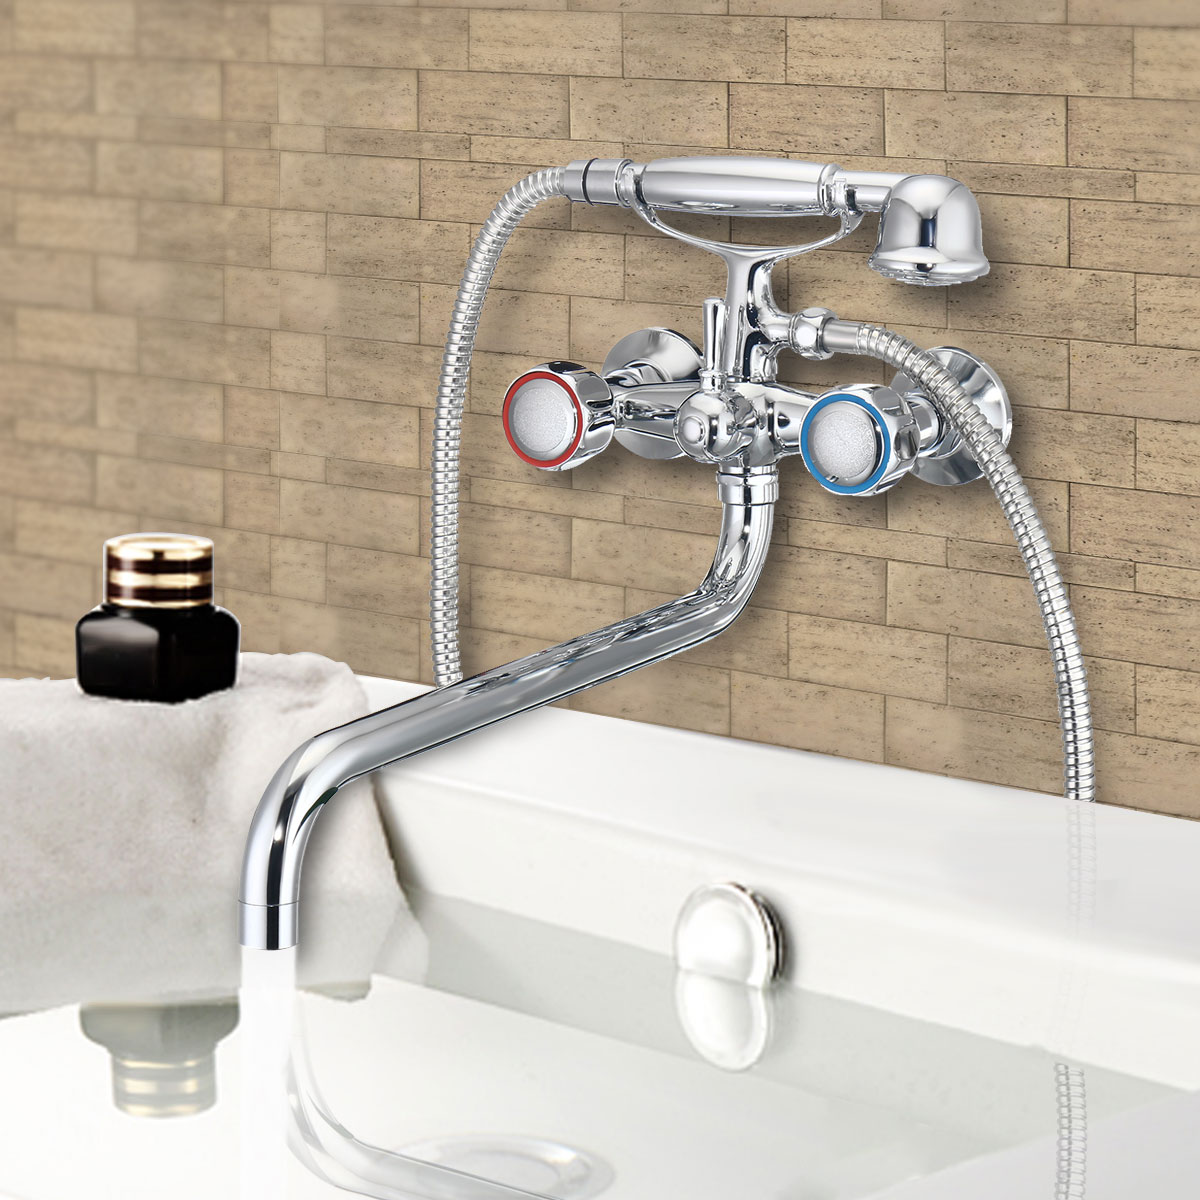 Xueqin Chrome Telephone Type Double Handle Bath Faucet Shower Faucets Handheld Spray Bathroom Shower Head Set Wall MountedXueqin Chrome Telephone Type Double Handle Bath Faucet Shower Faucets Handheld Spray Bathroom Shower Head Set Wall Mounted